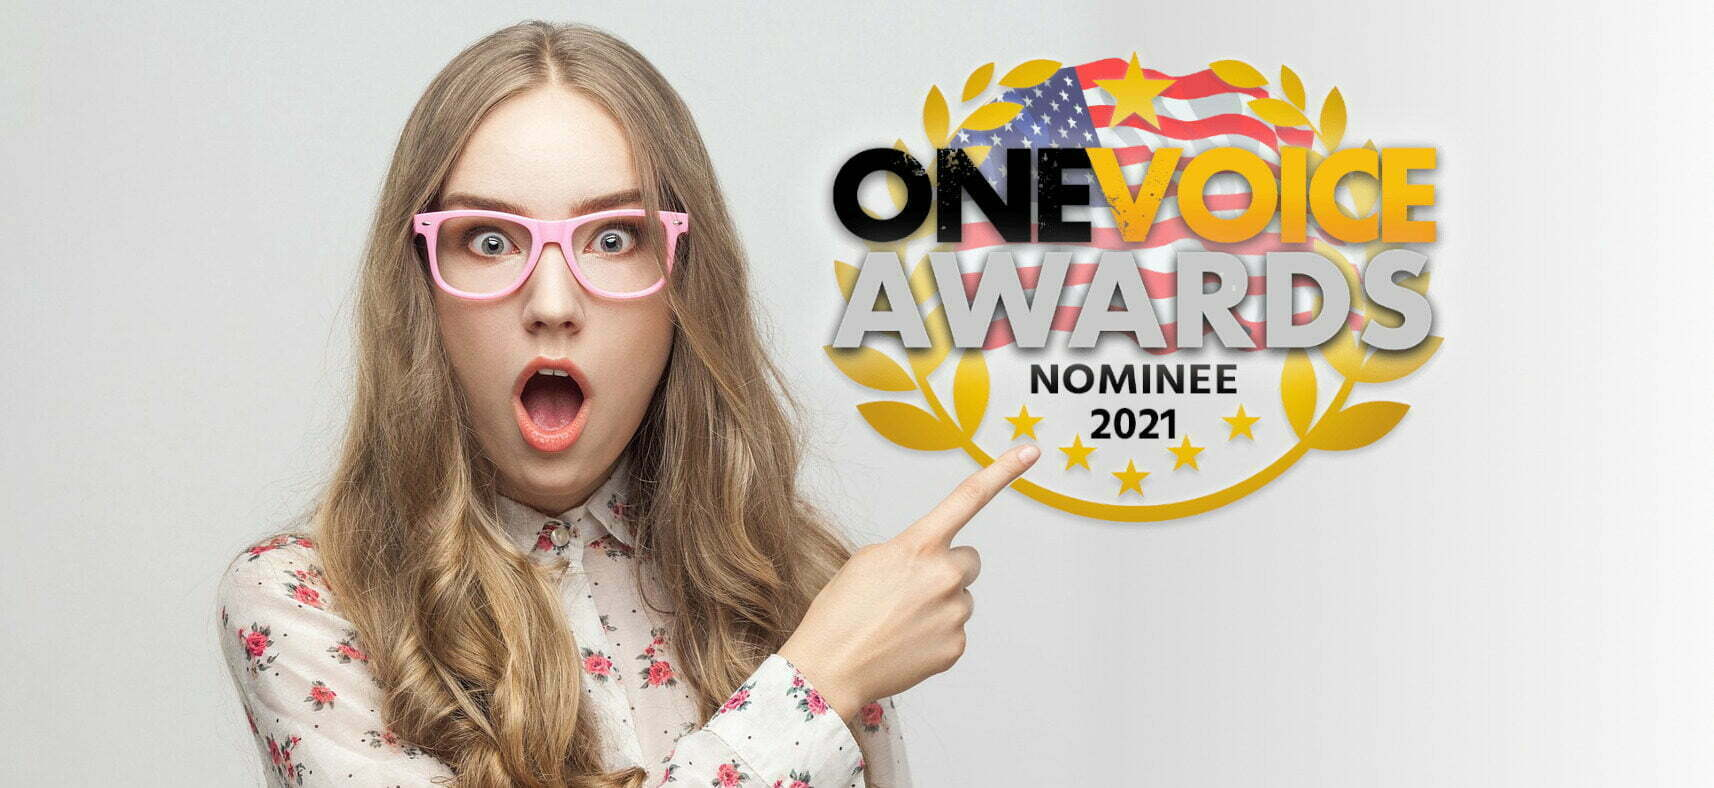 Surprised by OneVoice Award Nomination